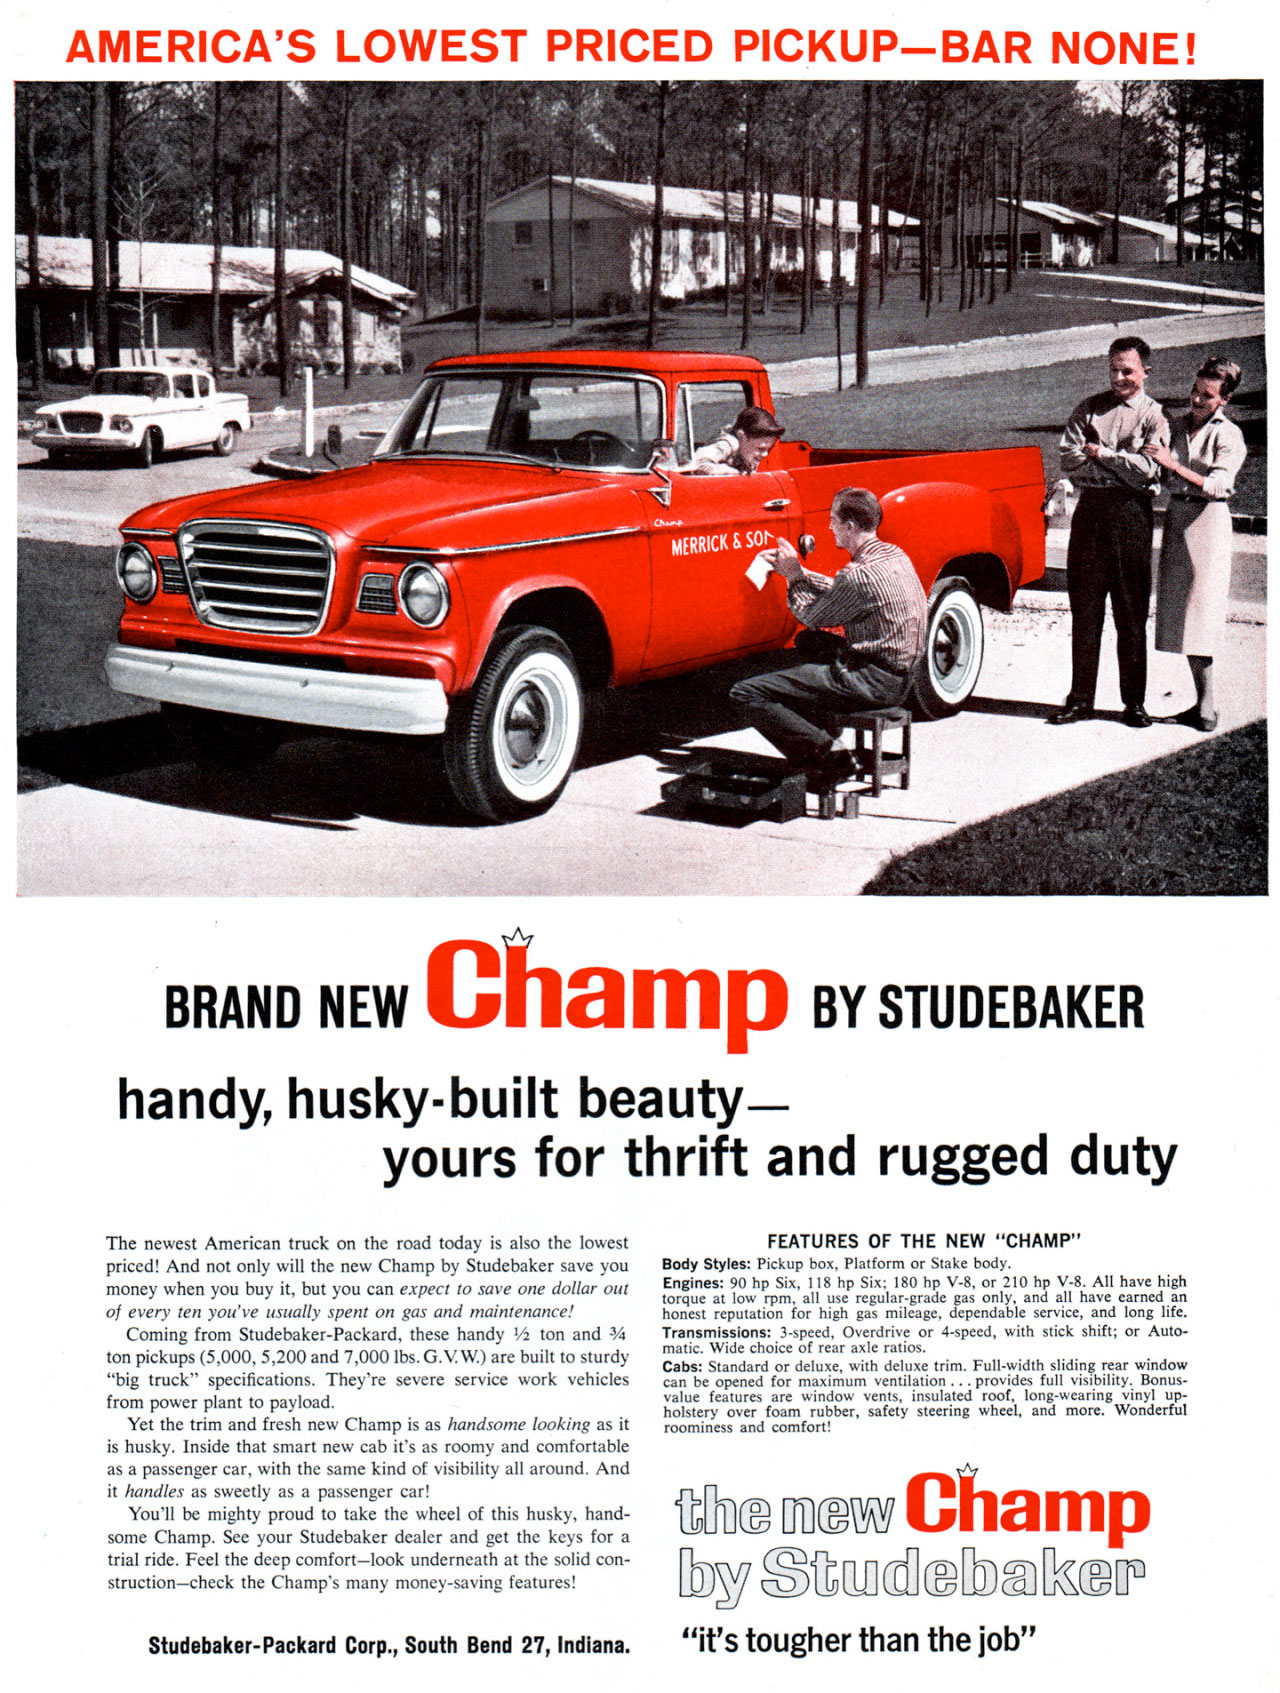 AMERICA'S LOWEST PRICED PICKUP-BAR NONE!   BRAND NEW Champ BY STUDEBAKER handy, husky-built beauty. Yours for thrift and rugged duty. The newest American truck on the road today is also the lowest priced! And not only will the new Champ by Studebaker save you money when you buy it, but you can expect to save one dollar out of every ten you've usually spent on gas and maintenance! Coming from Studebaker-Packard, these handy V2 ton and 3/4 ton pickups (5,000, 5,200 and 7,000 lbs. G.V. W.) are built to sturdy ''big truck'' specifications. They're severe service work vehicles from power plant to payload. Yet the trim and fresh new Champ is as handsome looking as it is husky. Inside that smart new cab it's as roomy and comfortable as a passenger car, with the same kind of visibility all around. And it handles as sweetly as a passenger car! You'll be mighty proud to take the wheel of this husky, hand-some Champ. See your Studebaker dealer and get the keys for a trial ride. Feel the deep comfort—look underneath at the solid con-struction—check the Champ's many money-saving features!  FEATURES OF THE NEW ''CHAMP'' Body Styles: Pickup box, Platform or Stake body. Engines: 90 hp Six, 118 by Six; 180 hp V-8, or 210 hp V-8. All have high torque at low rpm, all use regular-grade gas only, and all have earned an honest reputation for high gas mileage, dependable service, and long life. Transmissions: 3-speed, Overdrive or 4-speed, with stick shift; or Auto-matic. Wide choice of rear axle ratios. Cabs: Standard or deluxe, with deluxe trim. Full-width sliding rear window can be opened for maximum ventilation ... provides full visibility. Bonus-value features are window vents, insulated roof, long-wearing vinyl up-holstery over foam rubber, safety steering wheel, and more. Wonderful roominess and comfort,  Ime now Champ biOith[Luciebshap  Studebaker-Packard Corp., South Bend 27, Indiana. ''It's tougher than the job''